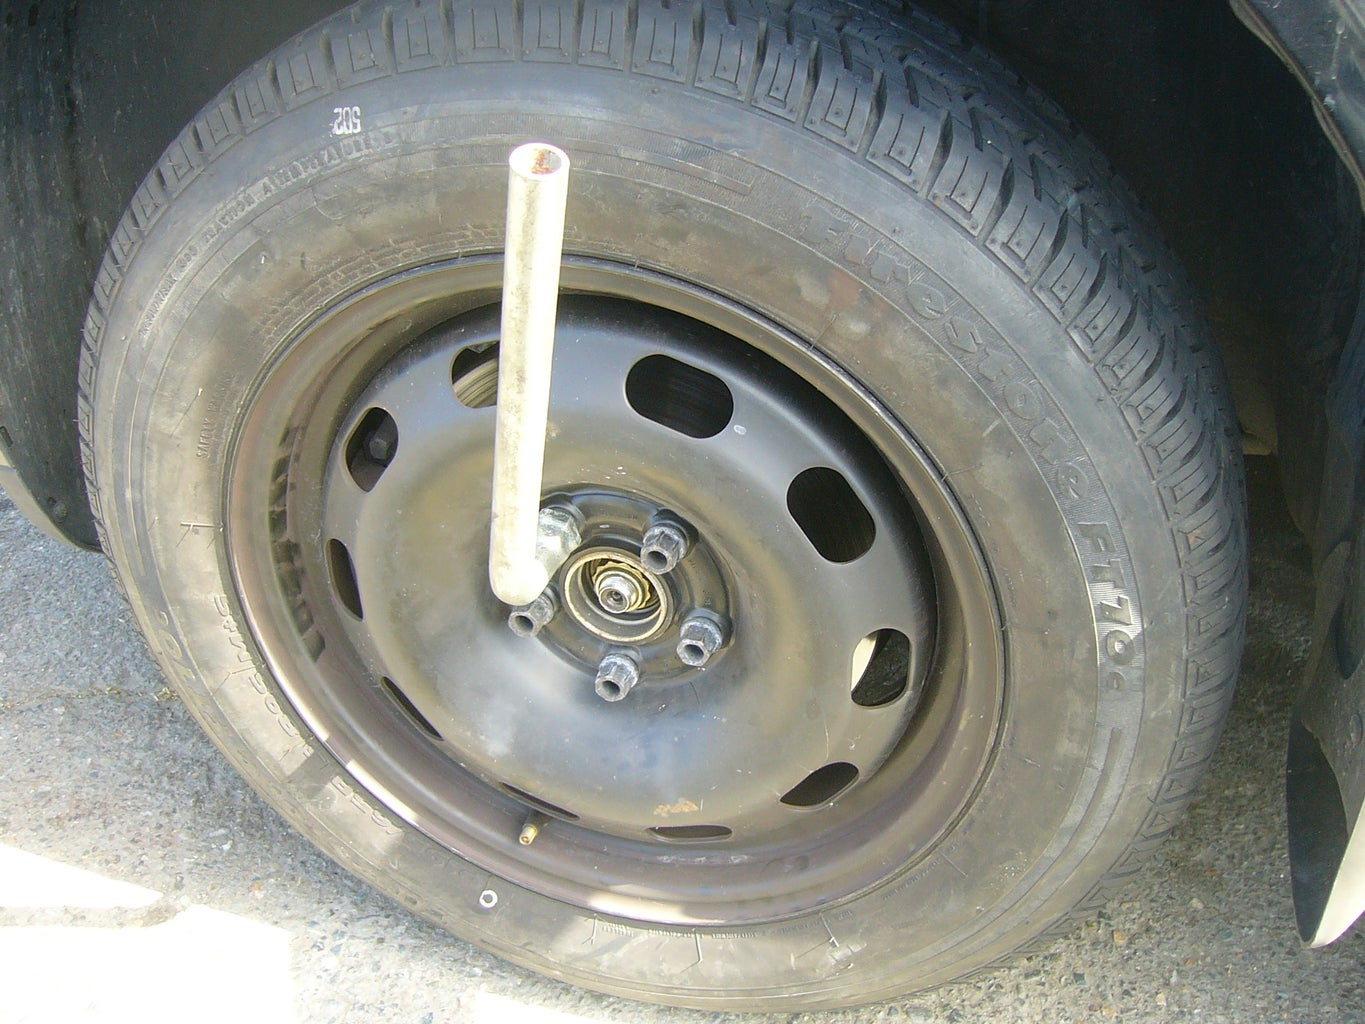 Partially Lower Your Vehicle - Tighten Lugs